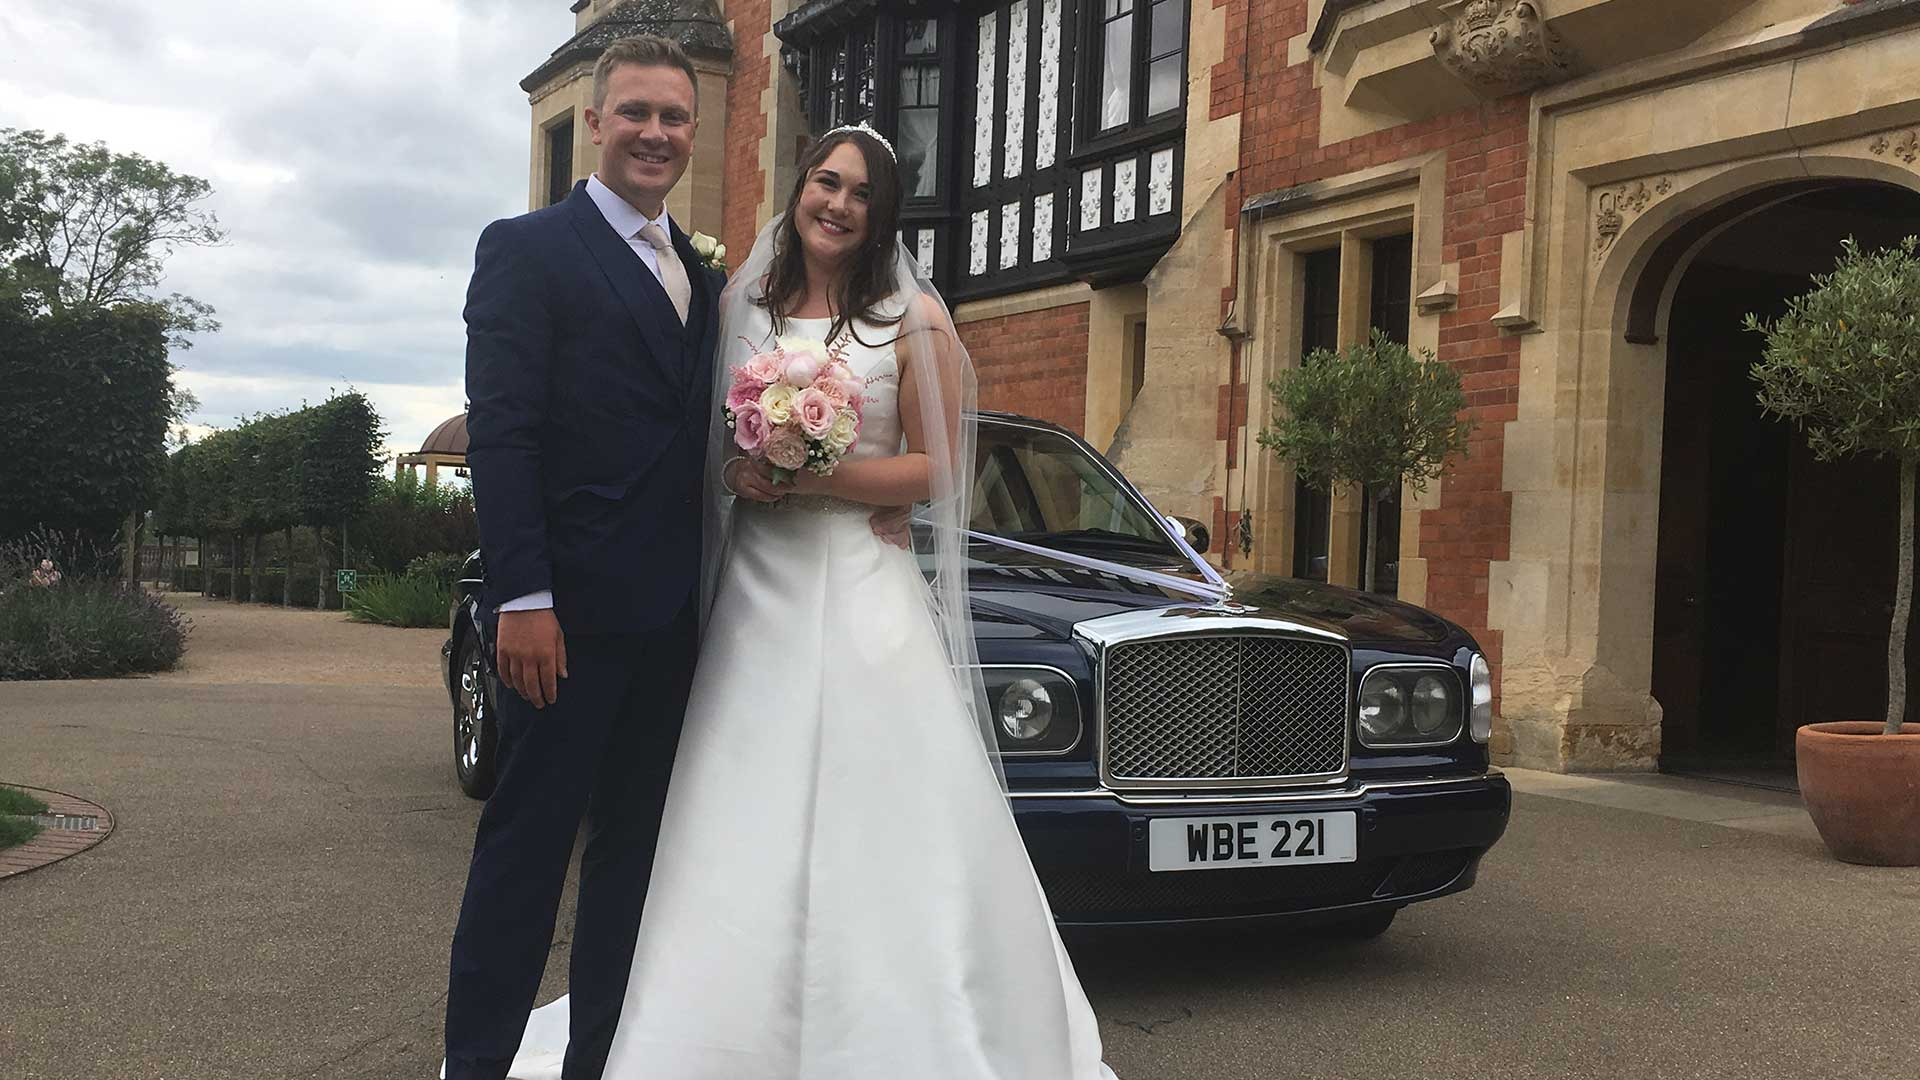 Hannah and Matt with the Bentley Arnage wedding car in Blue